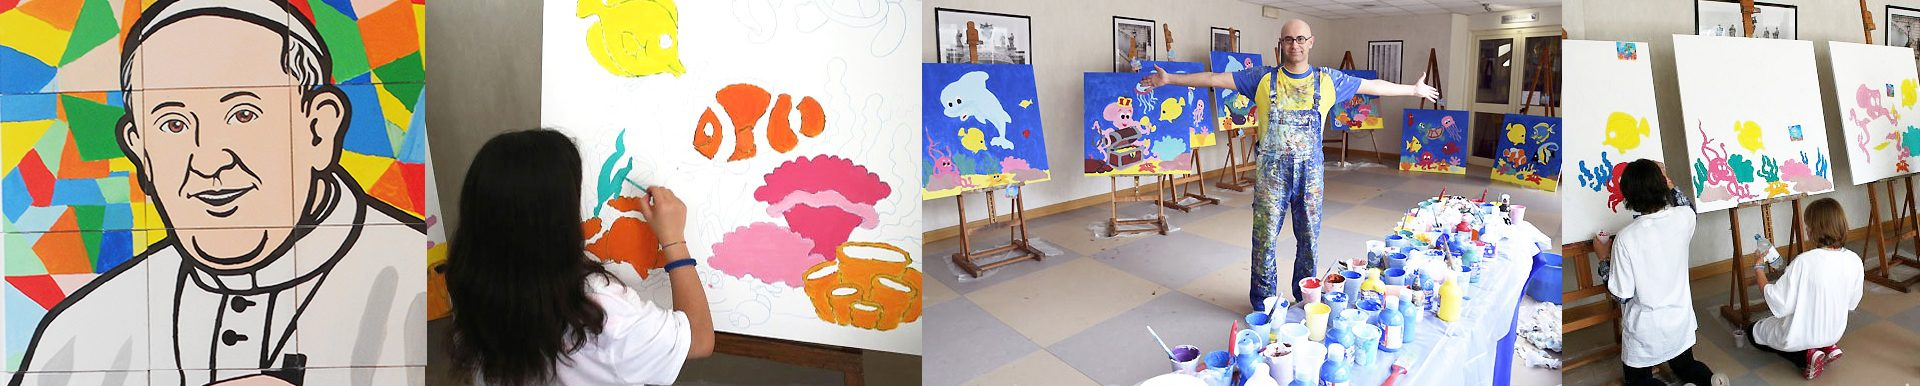 murales_frizzi_bambini_ospedale5